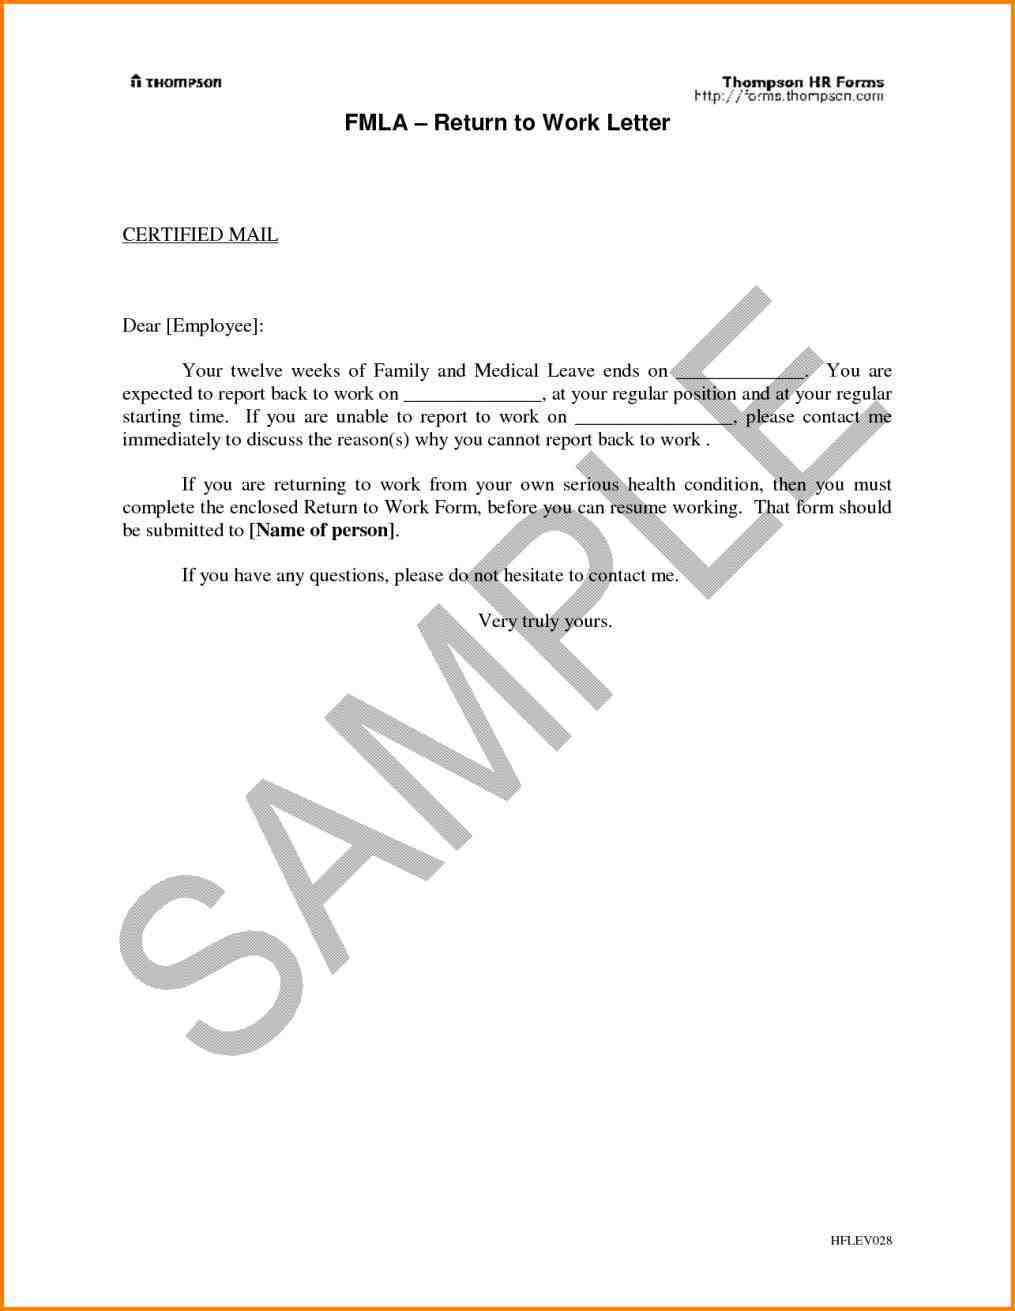 Maternity Return to Work Letter From Employer Template - Template Letter Maternity Leave Employer Best Of 9 Sample Template